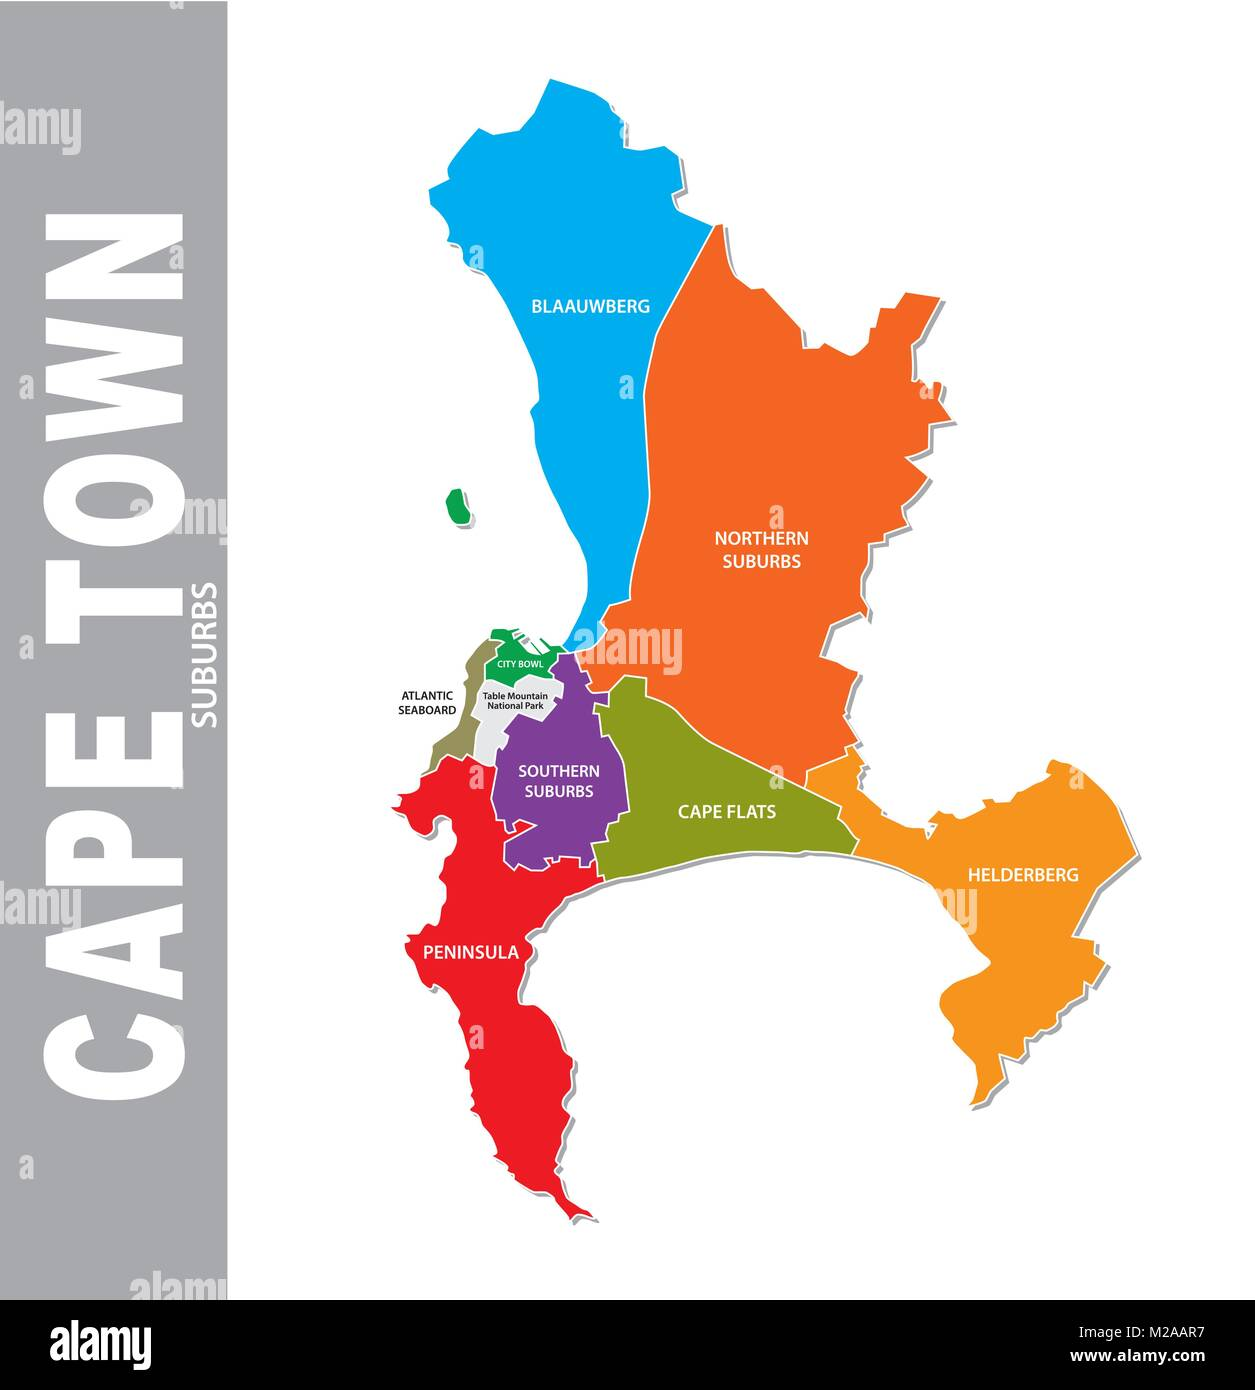 Colorful cape town suburb vector map Stock Vector Art & Illustration ...